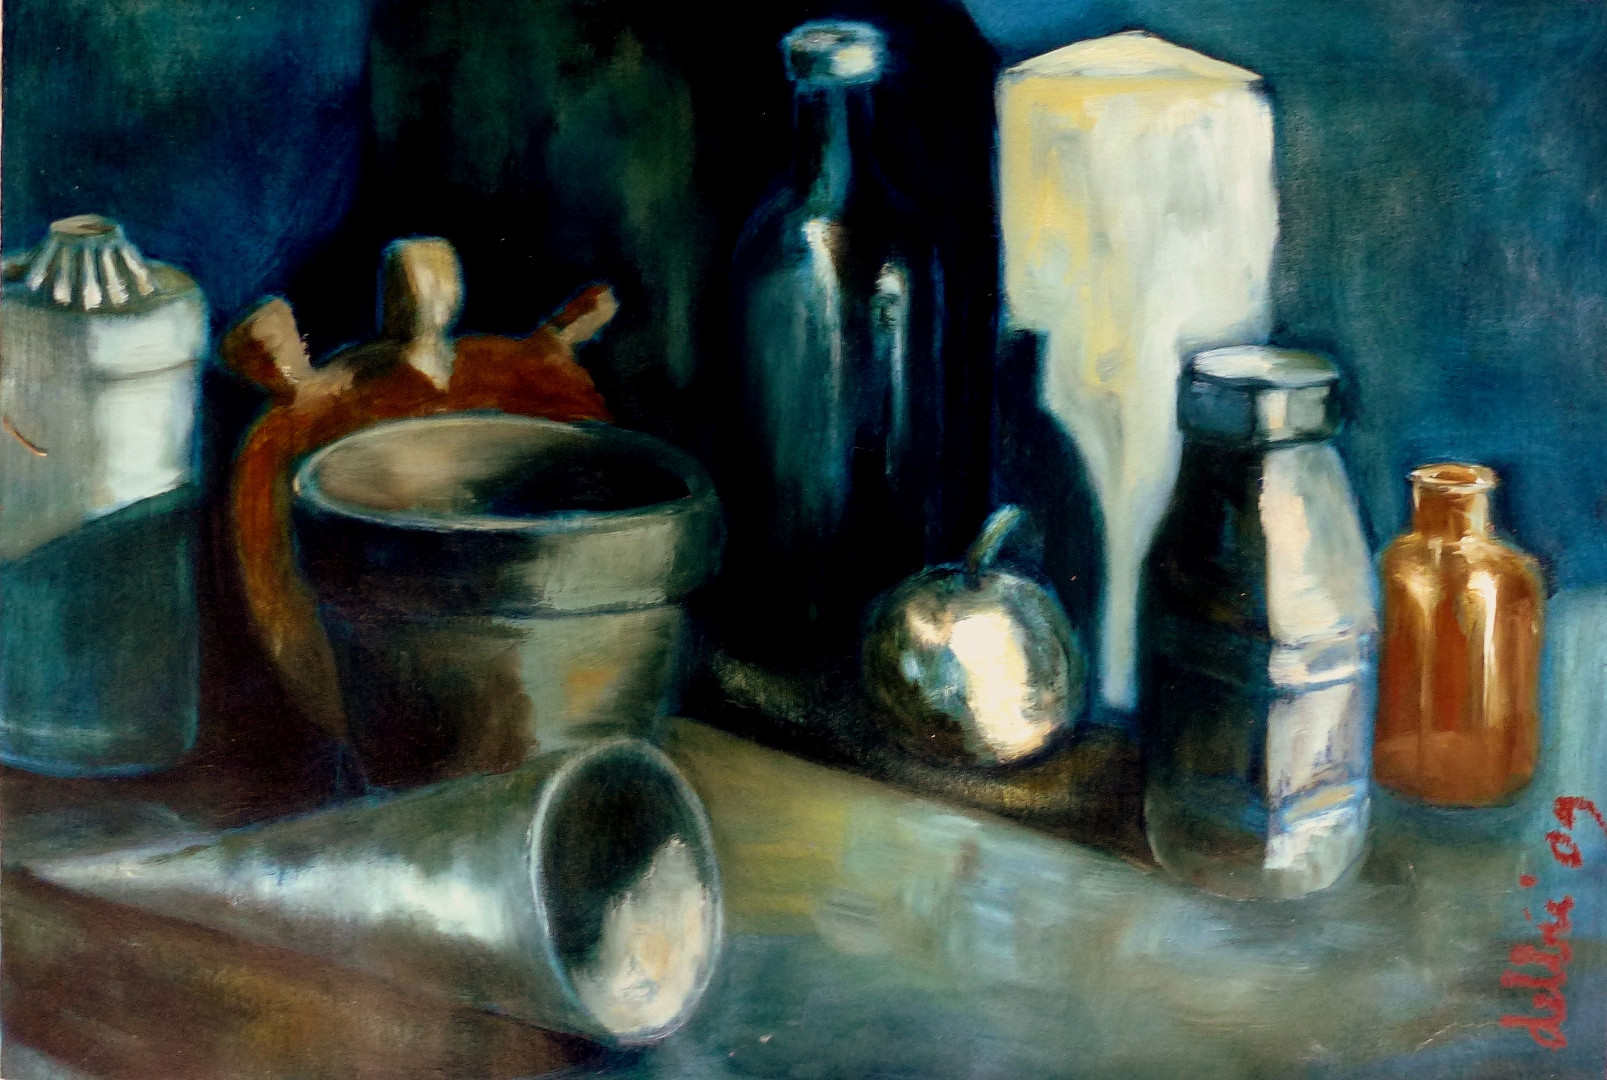 Still Life Pots - 2009 -  oil on paper - 41 x 61 cm